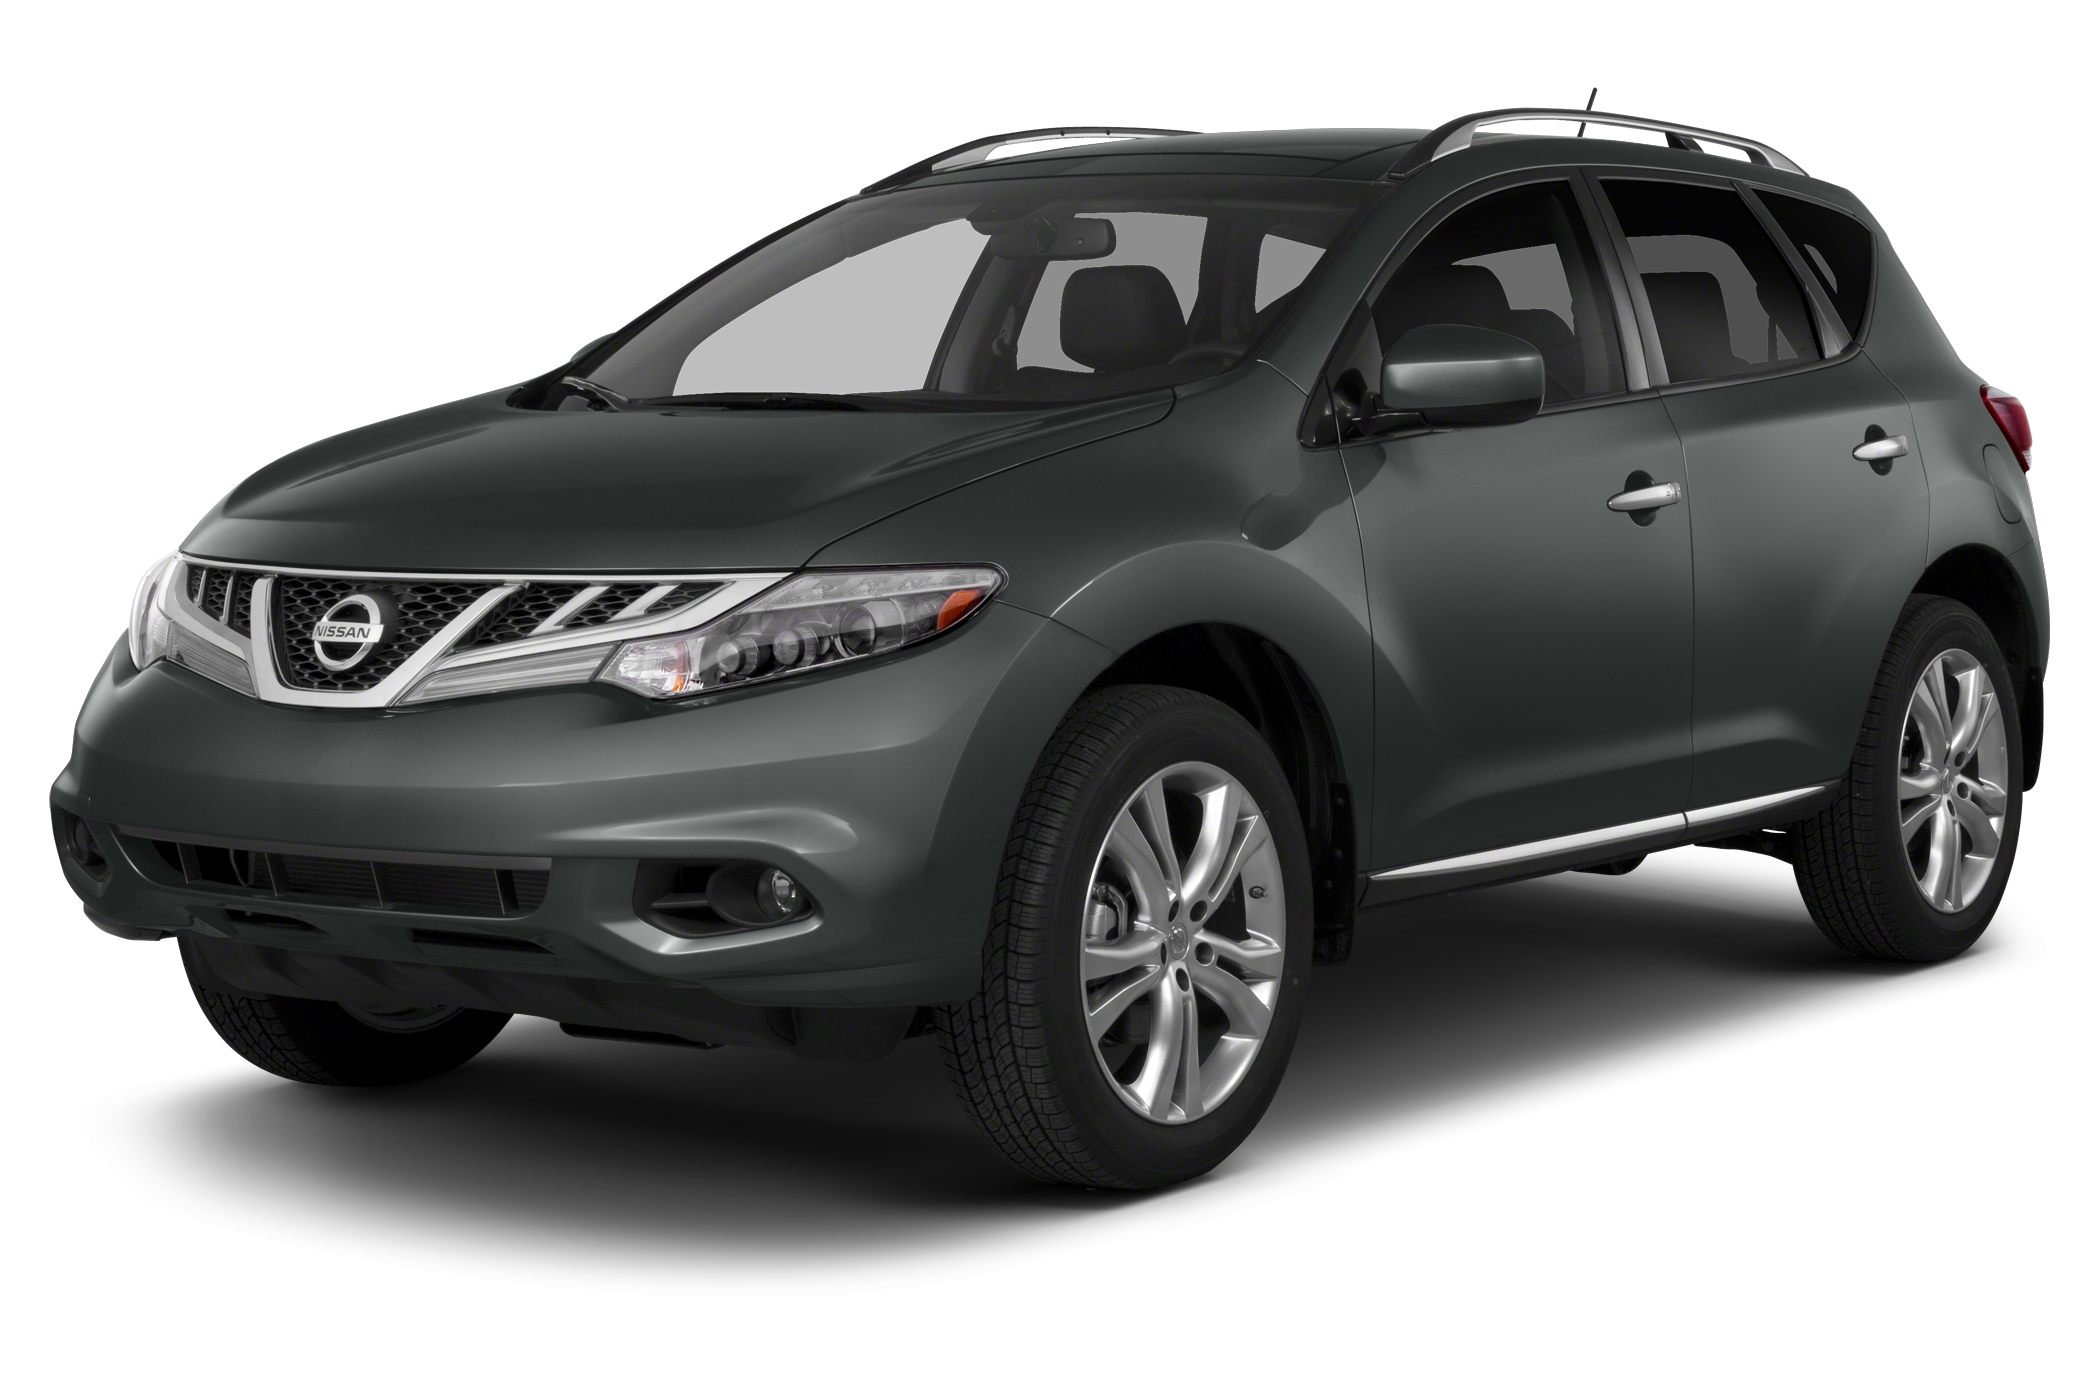 2014 Nissan Murano S SUV for sale in Idaho Falls for $23,995 with 26,208 miles.